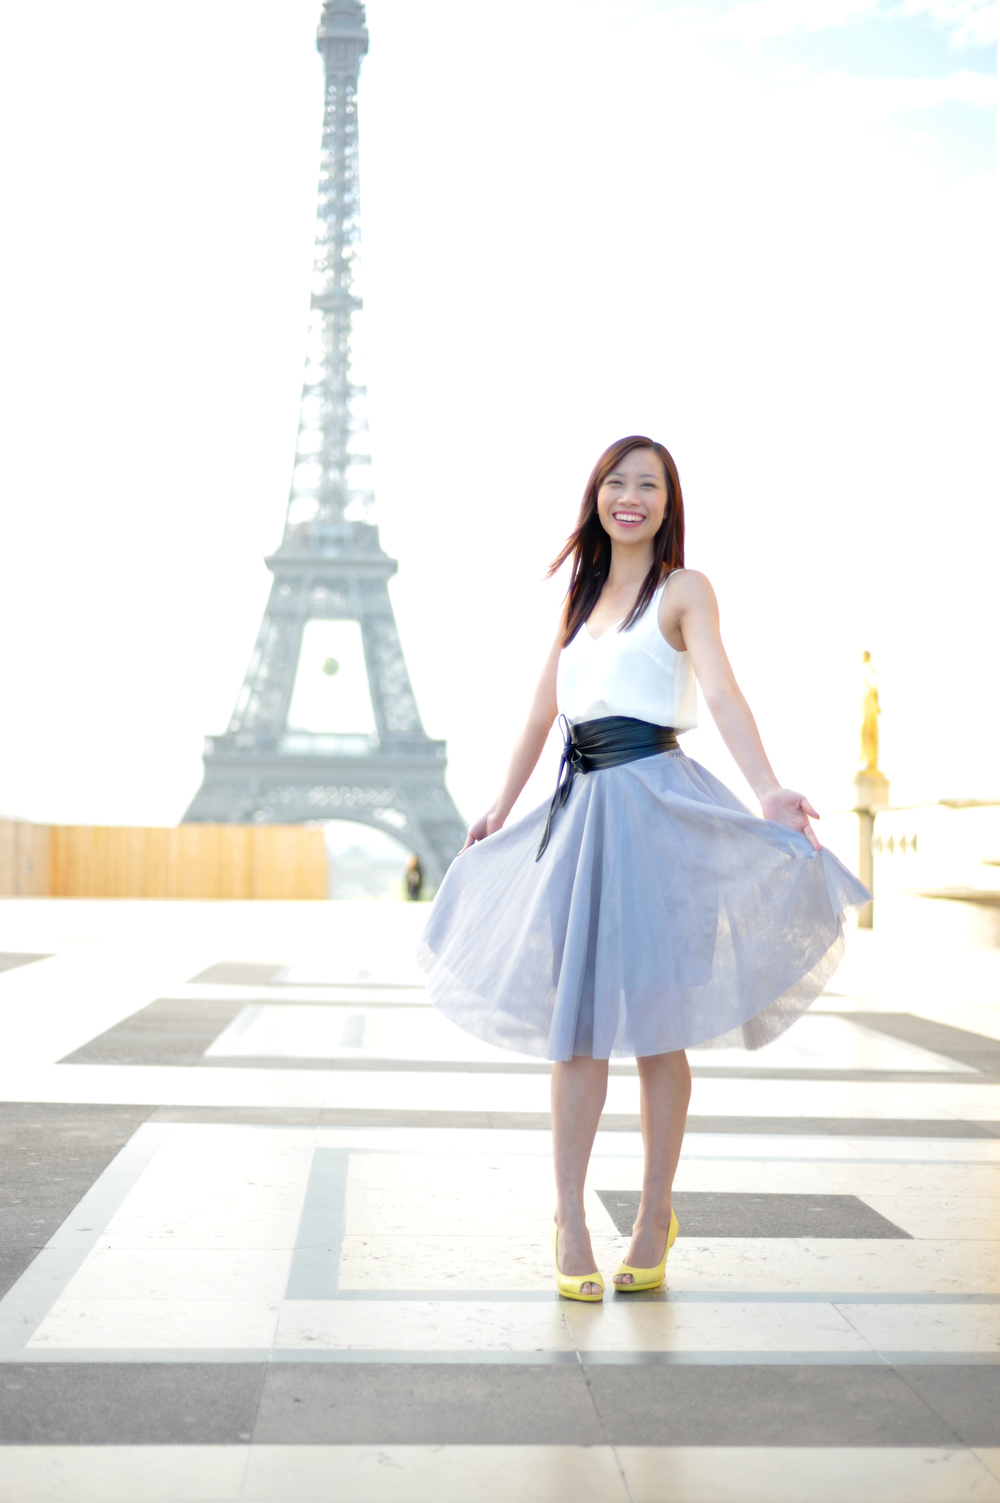 Stylish fashion in Paris